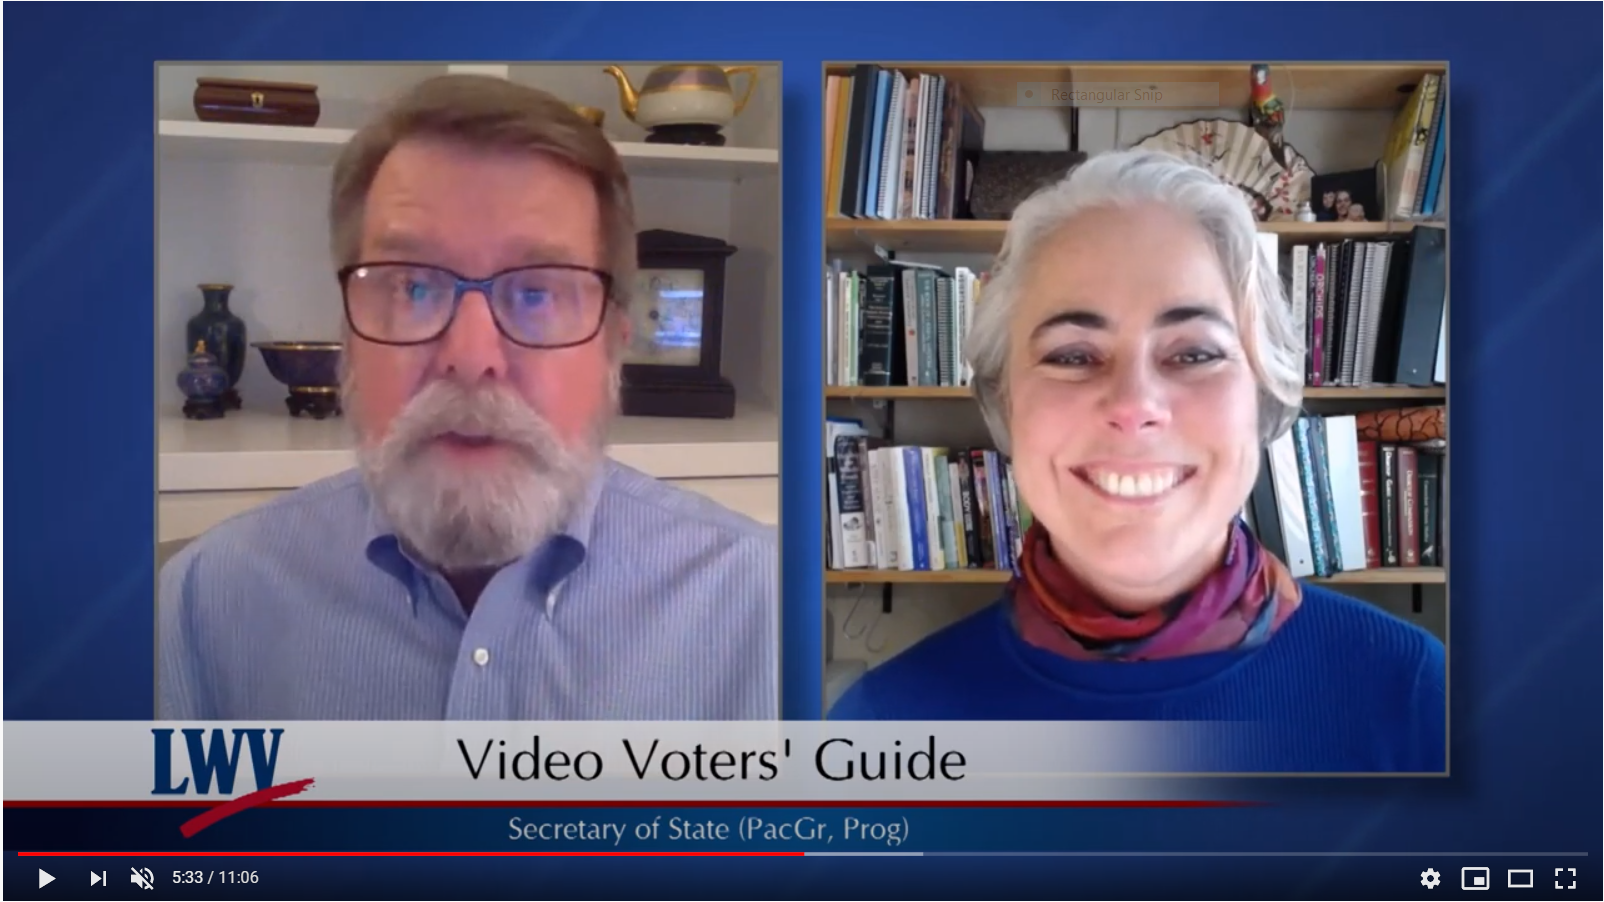 LWV Video Voters Guide Interview